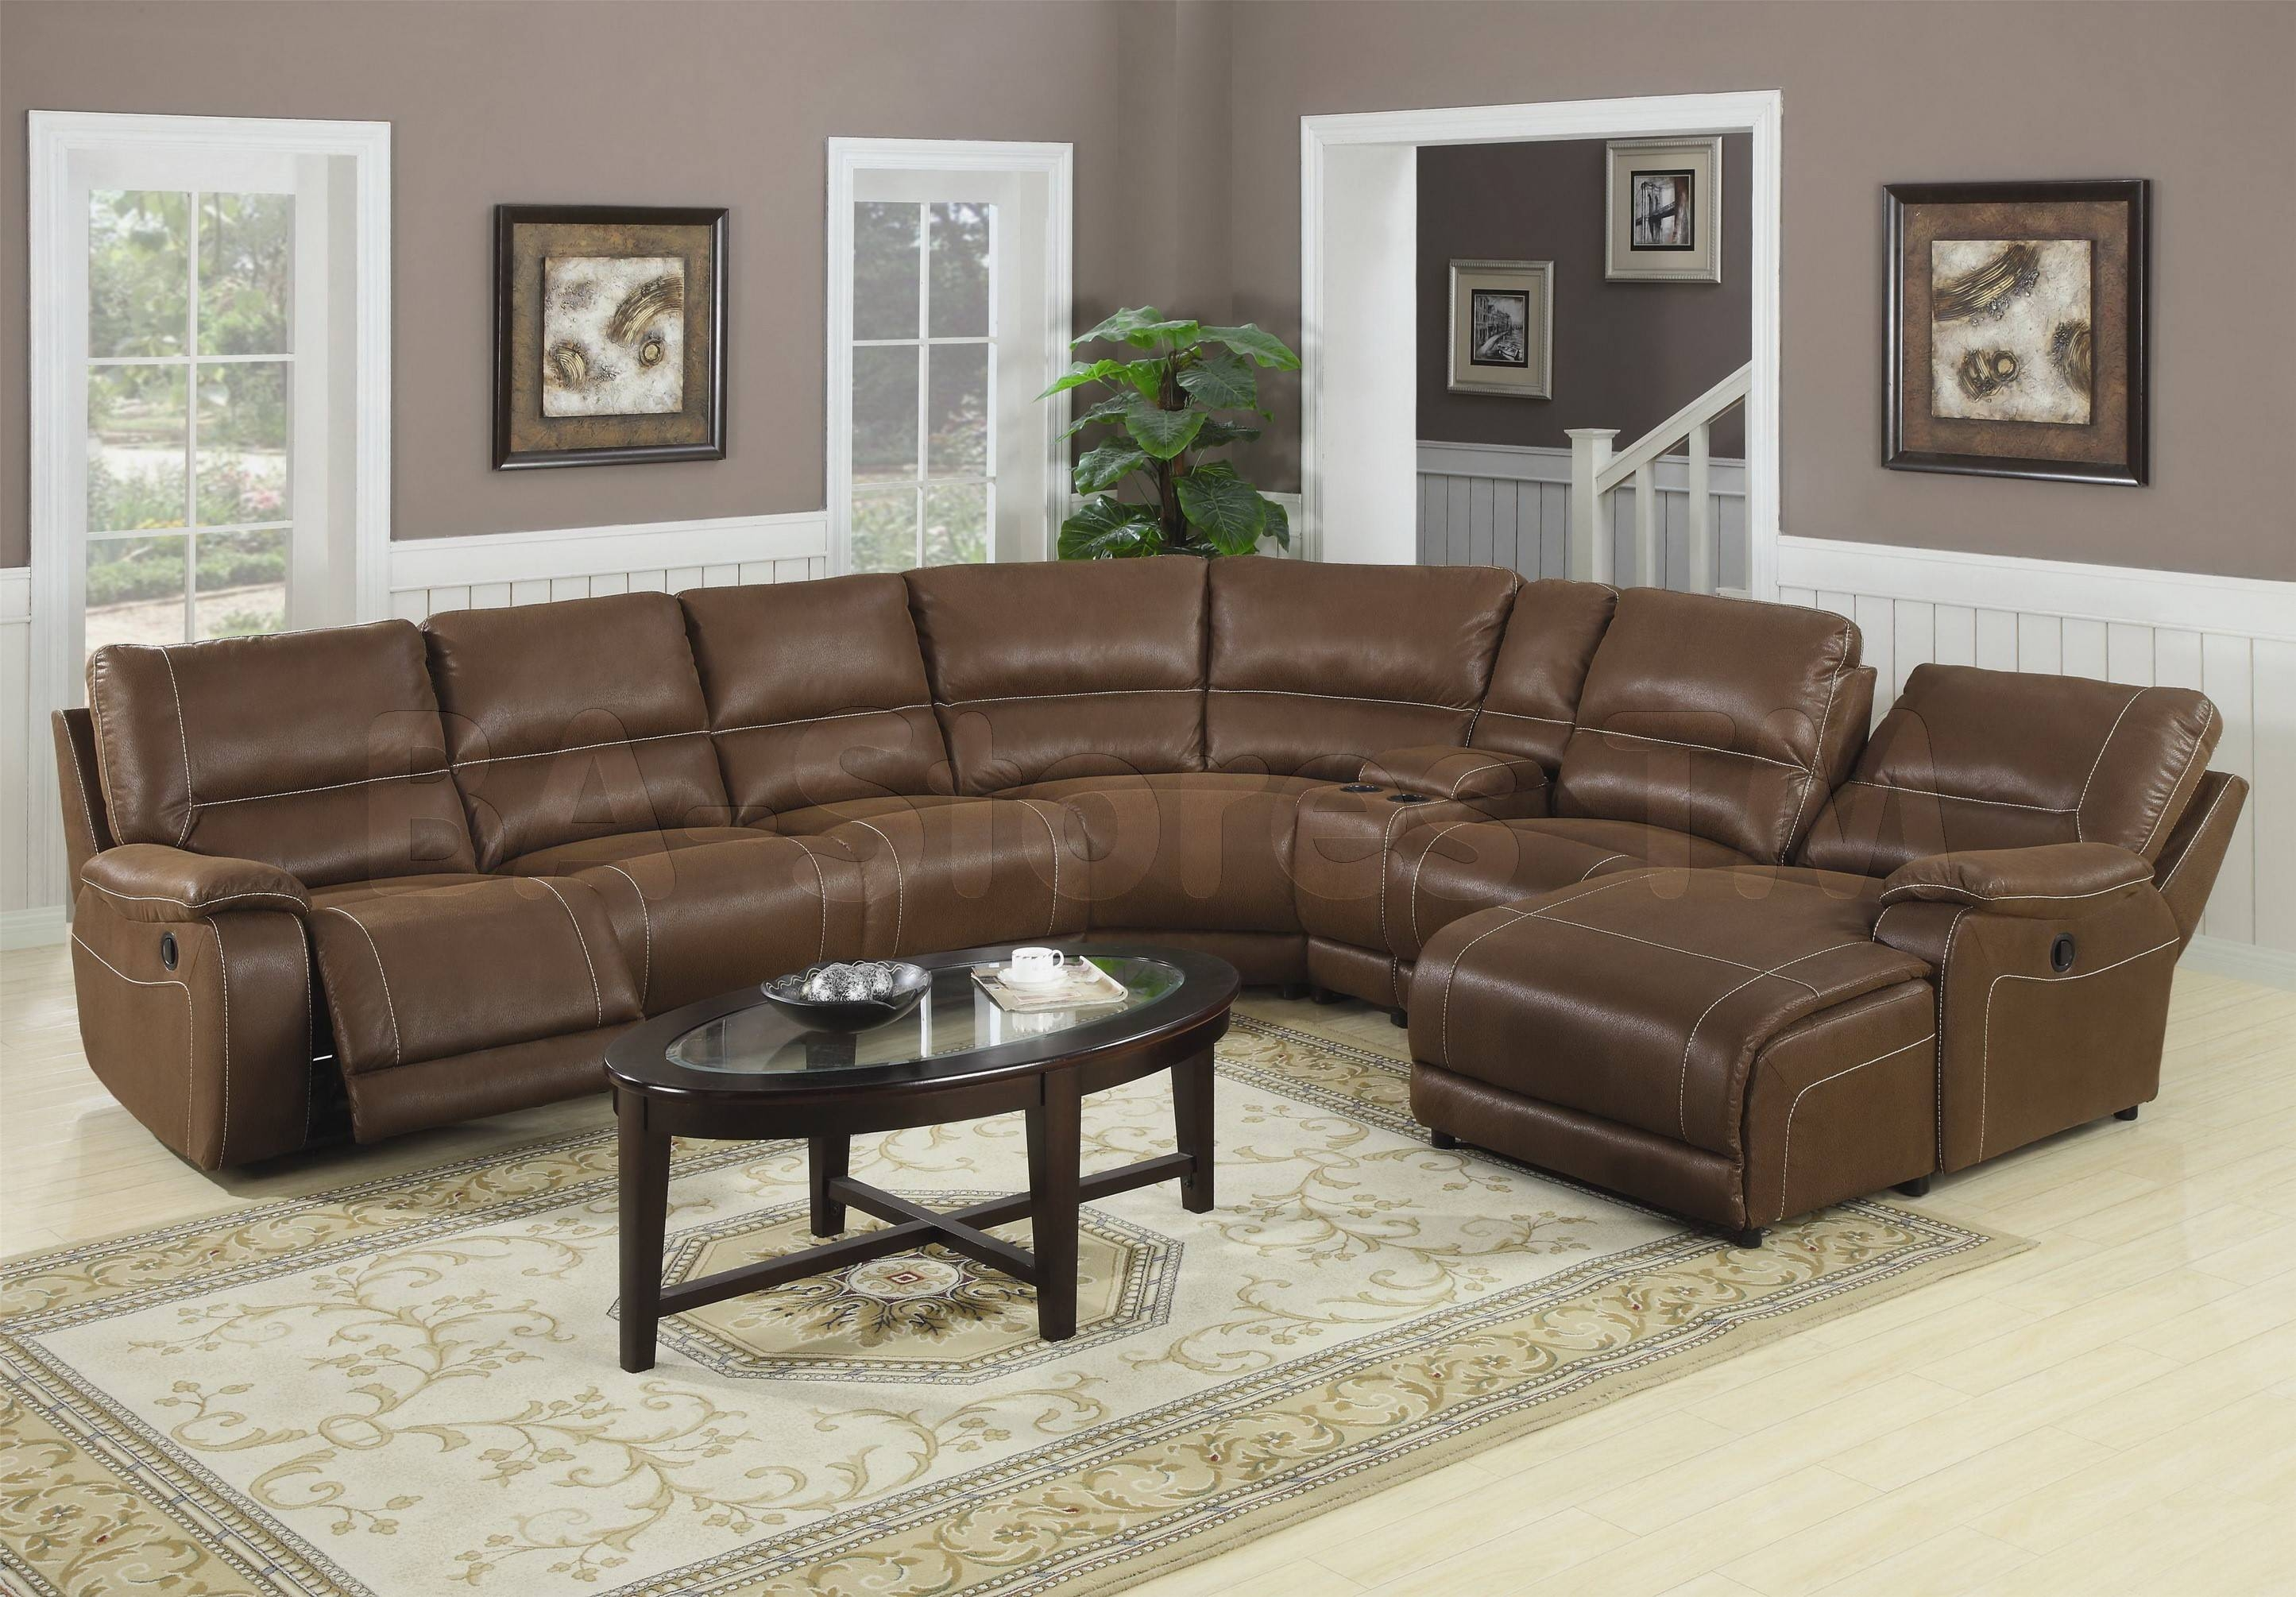 Astonishing Sectional Sofa With Recliner And Chaise Lounge 93 With throughout Jennifer Sofas (Image 12 of 30)